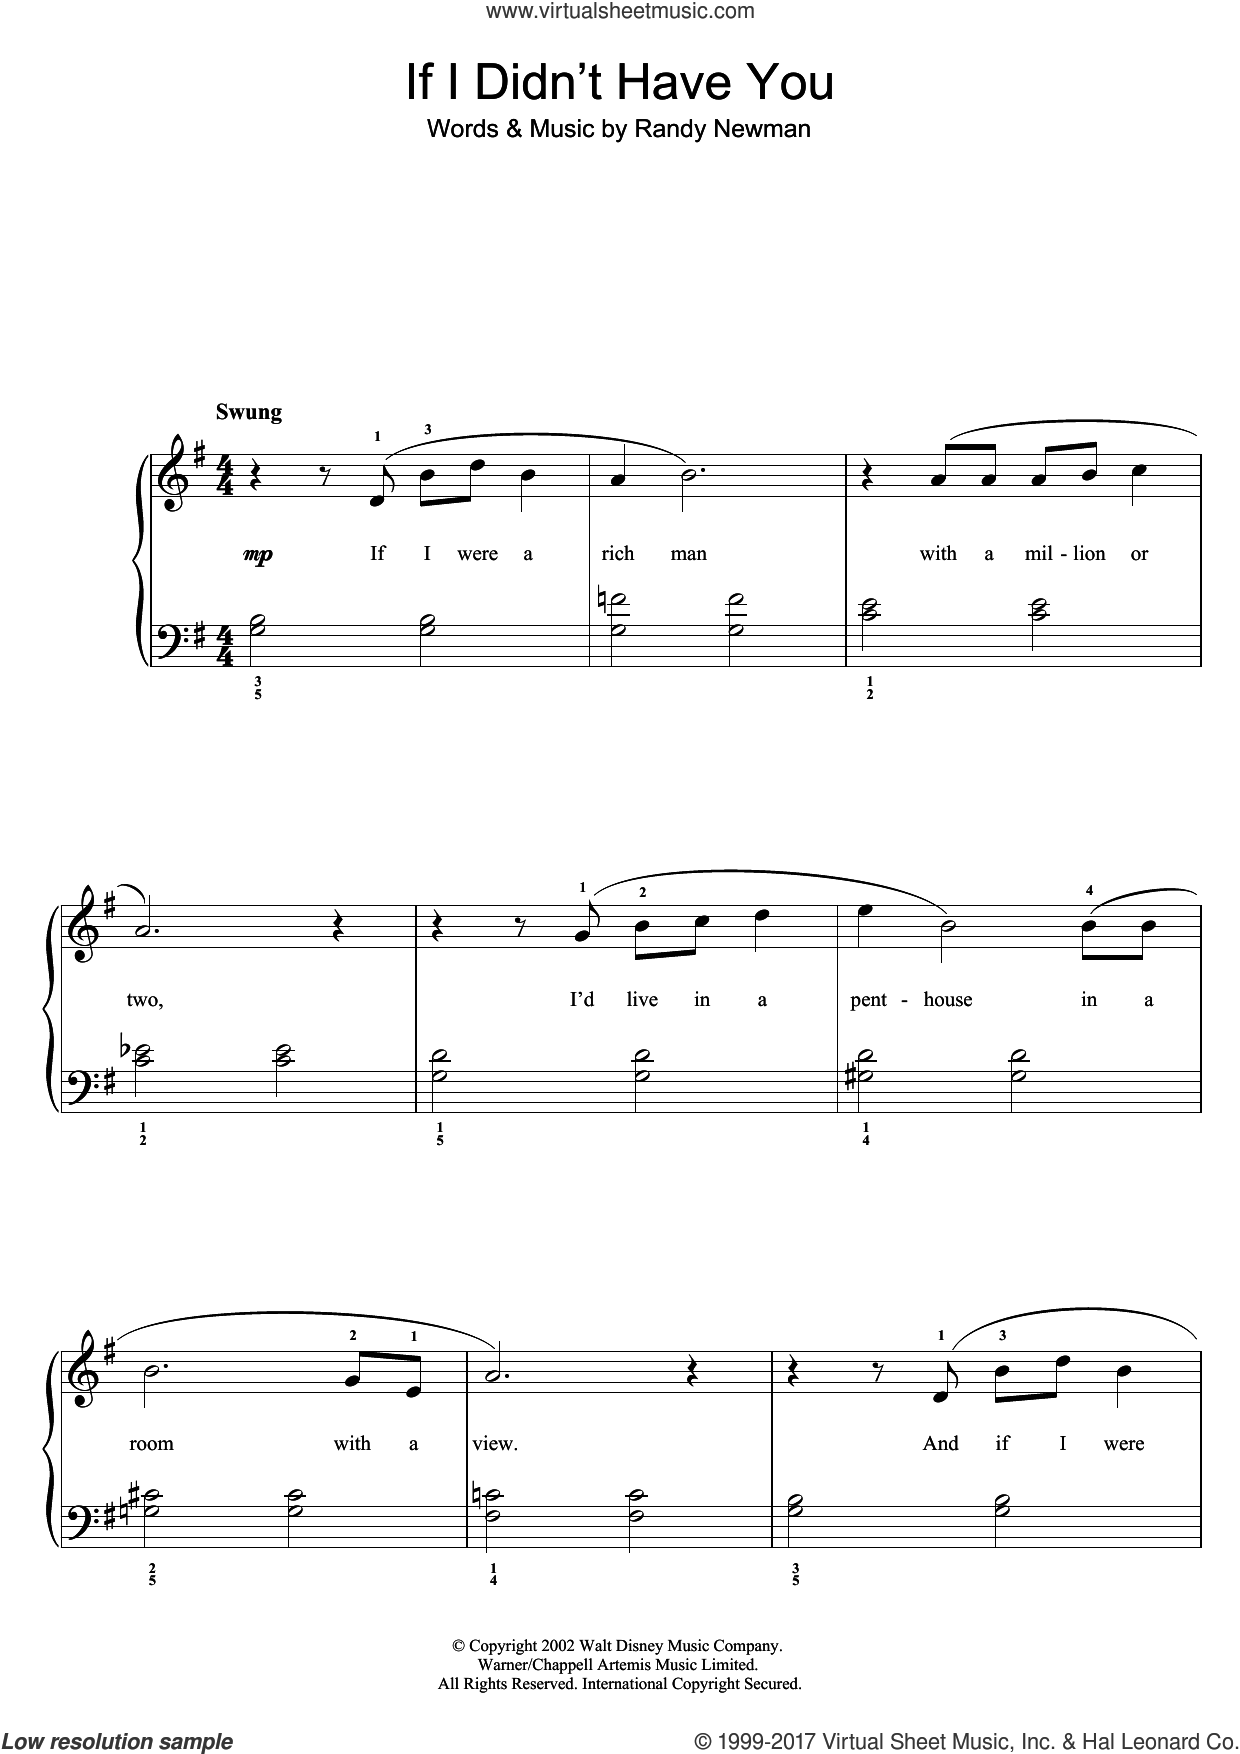 If I Didn't Have You (from Monsters, Inc.) sheet music for piano solo by Randy Newman, easy skill level